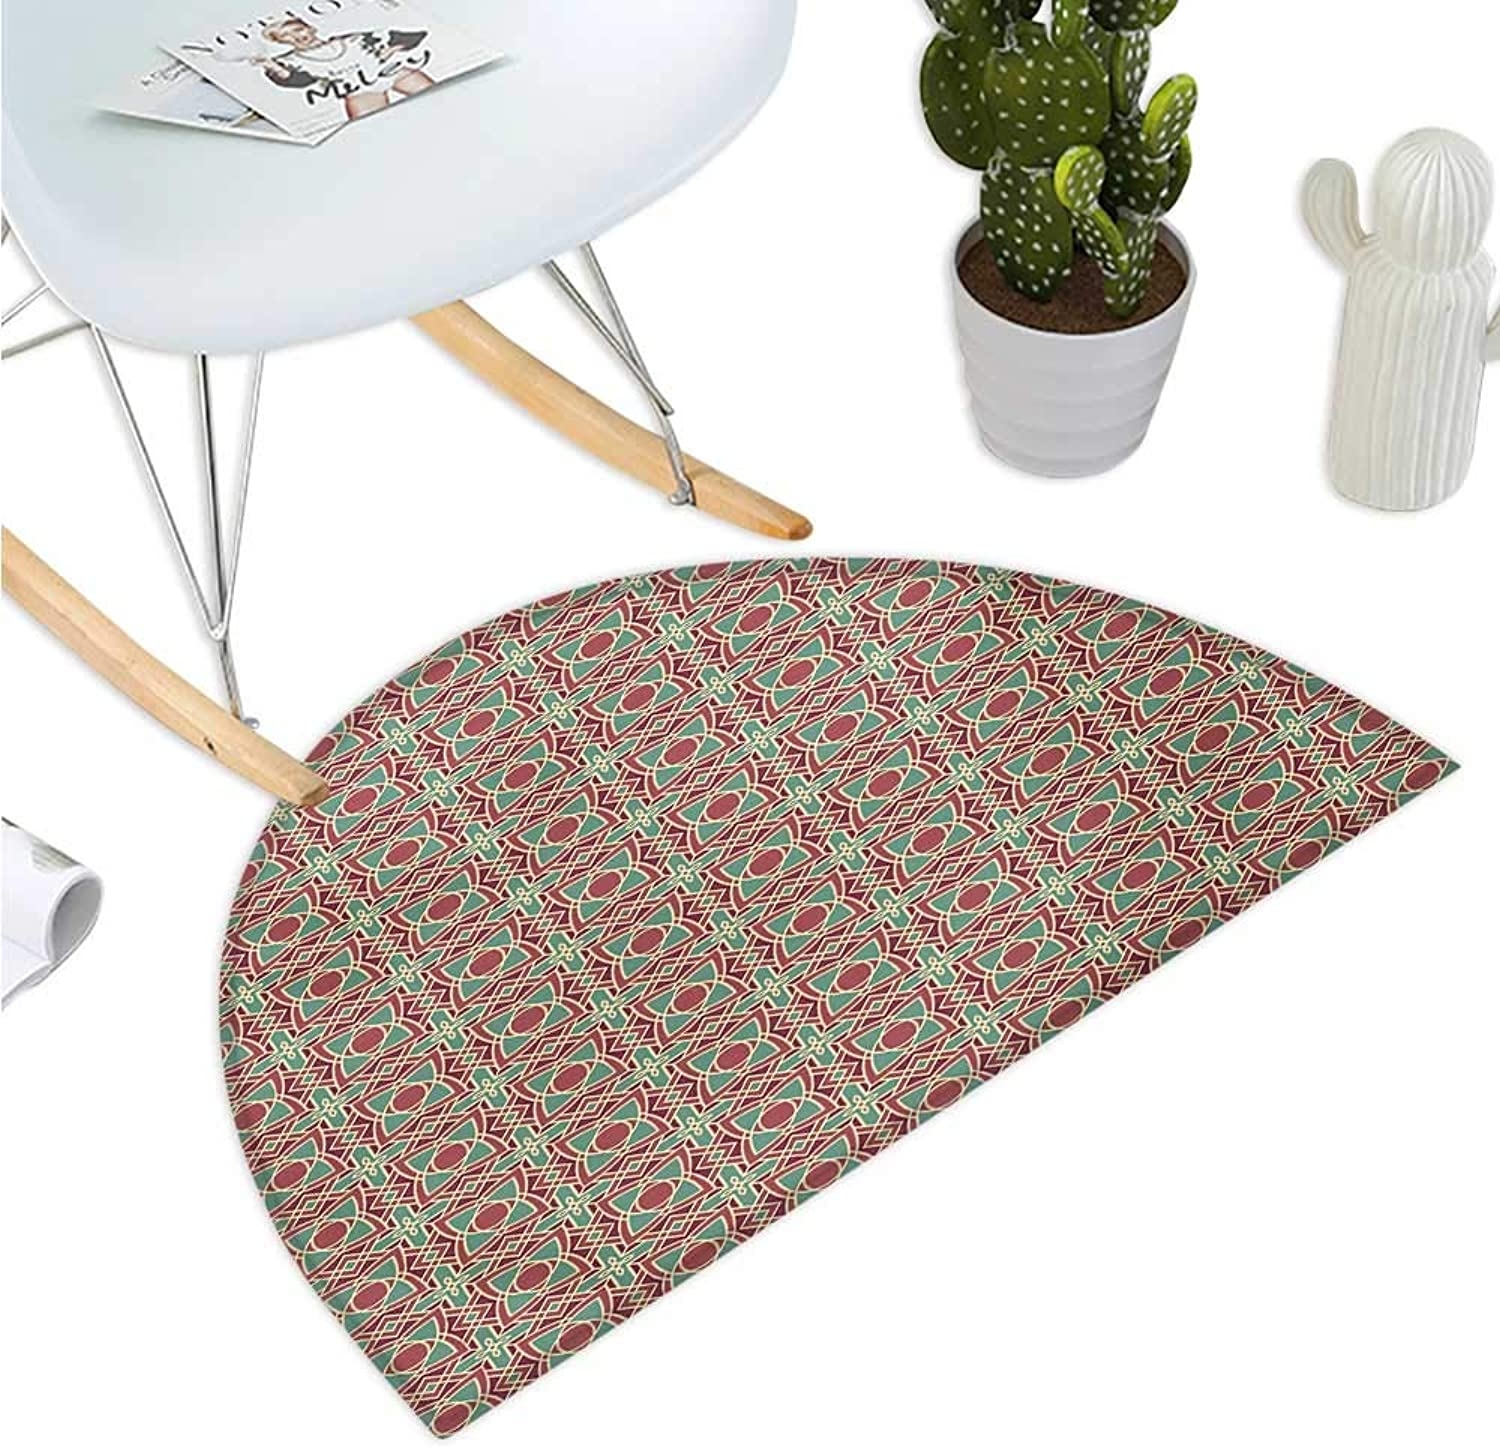 Ethnic Semicircle Doormat Framework with Wide Petals Oriental Nature in Full Swing Entangled Halfmoon doormats H 47.2  xD 70.8  Maroon Pink Almond Green